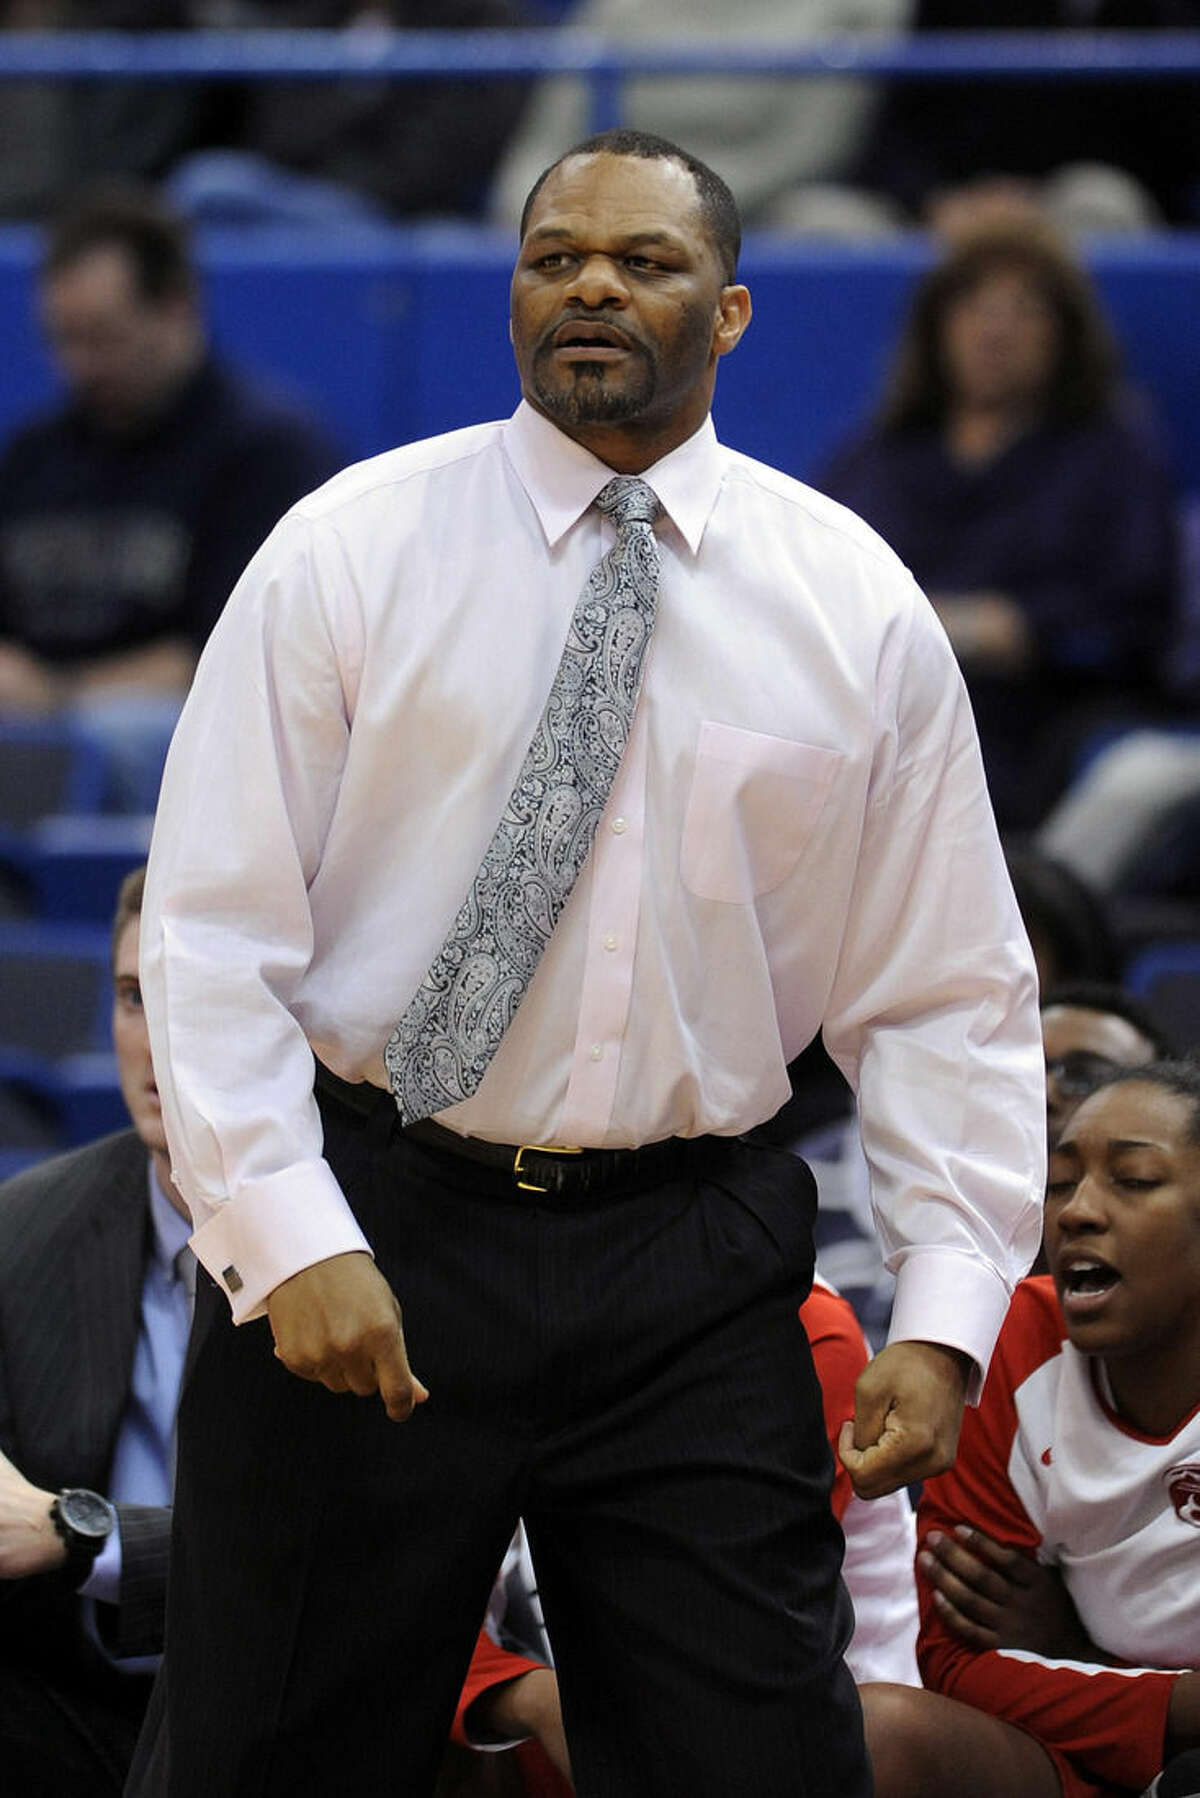 Houston head coach Ronald Hughey reacts during the first half of an NCAA college basketball game against Connecticut in Hartford, Conn., on Tuesday, Feb. 17, 2015. (AP Photo/Fred Beckham)